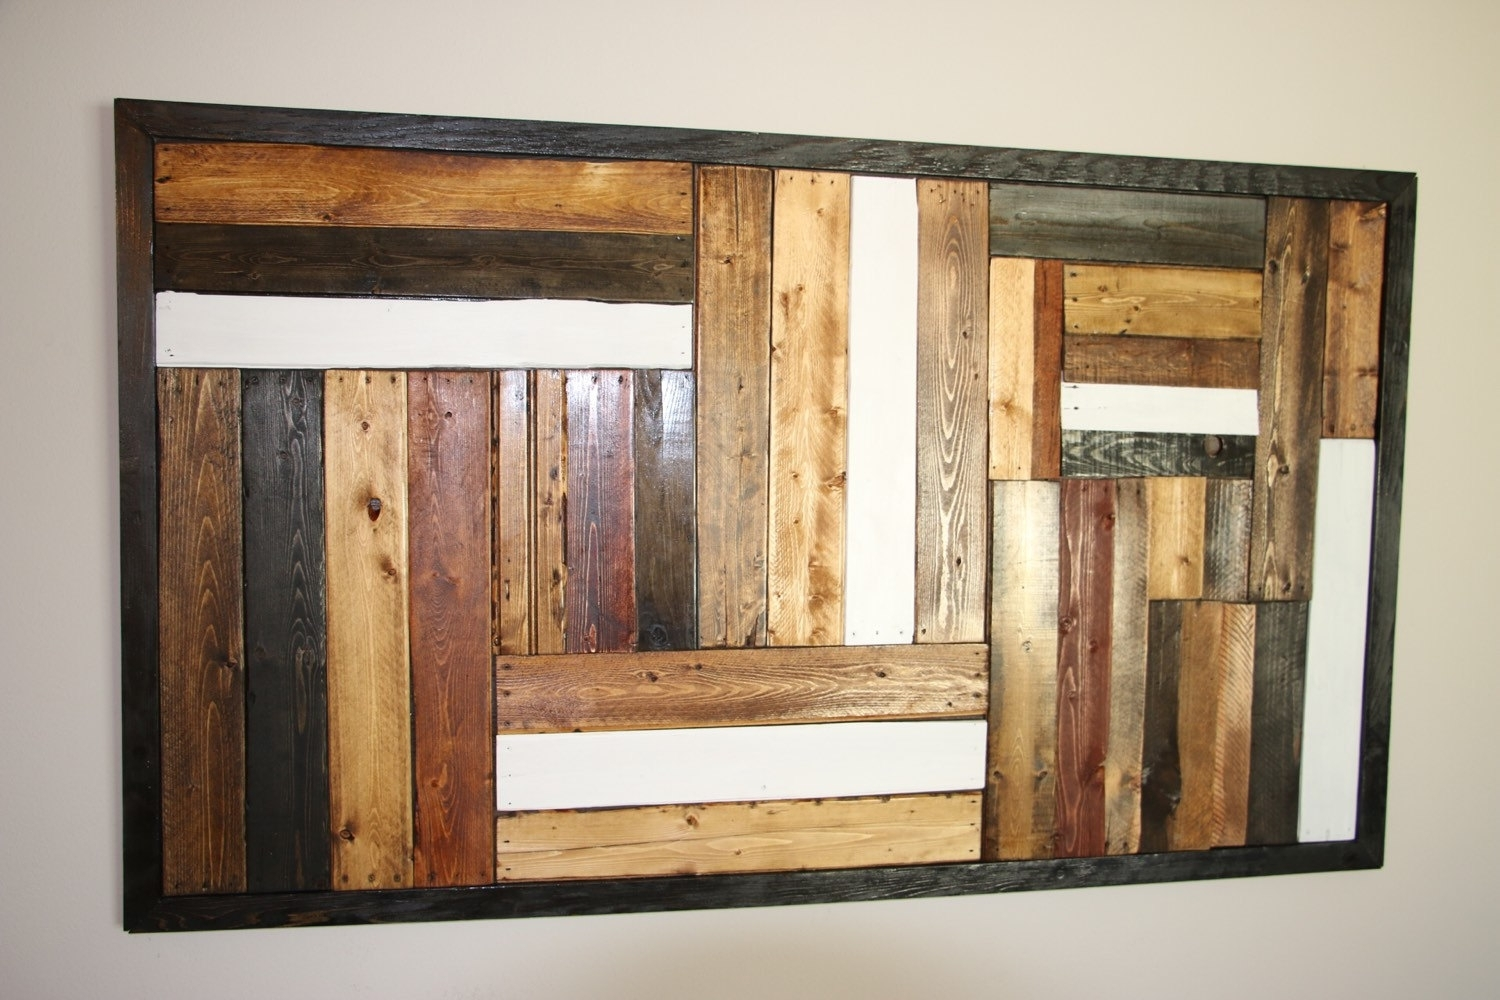 Recycled Pallet Wall Art Pallet Furniture Plans, Tables Pallet Art For Latest Pallet Wall Art (View 10 of 15)